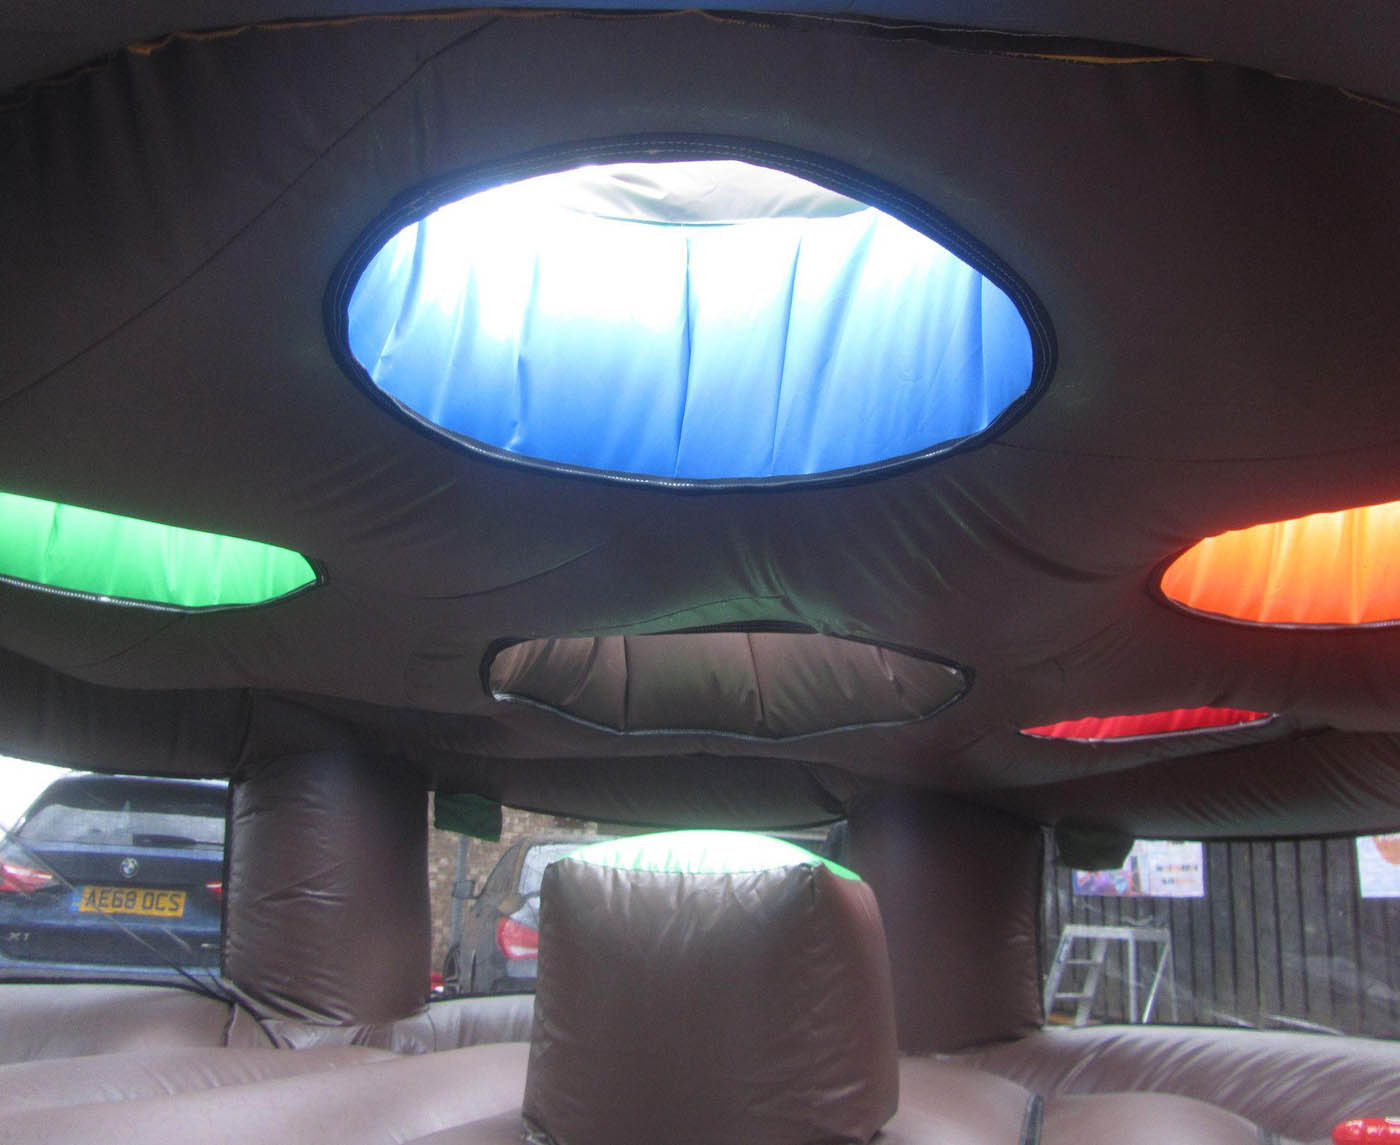 Inside of Inflatable Whack A Mole Activity Game